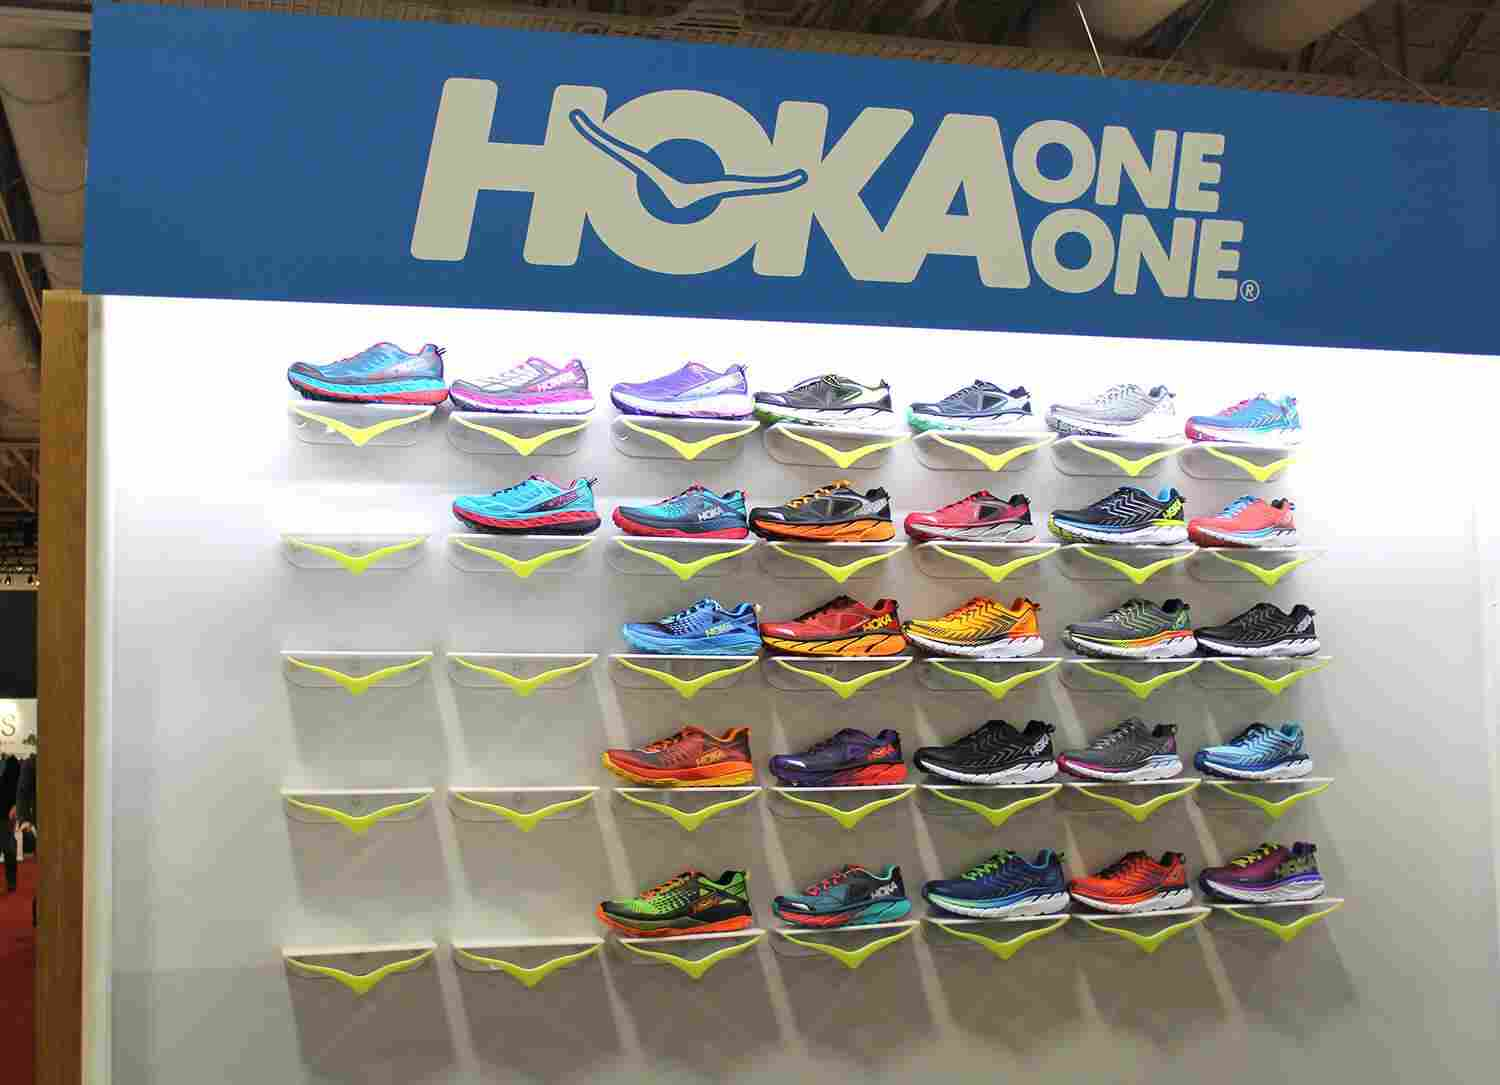 hoka-one-one_product-showcase-line-up-group